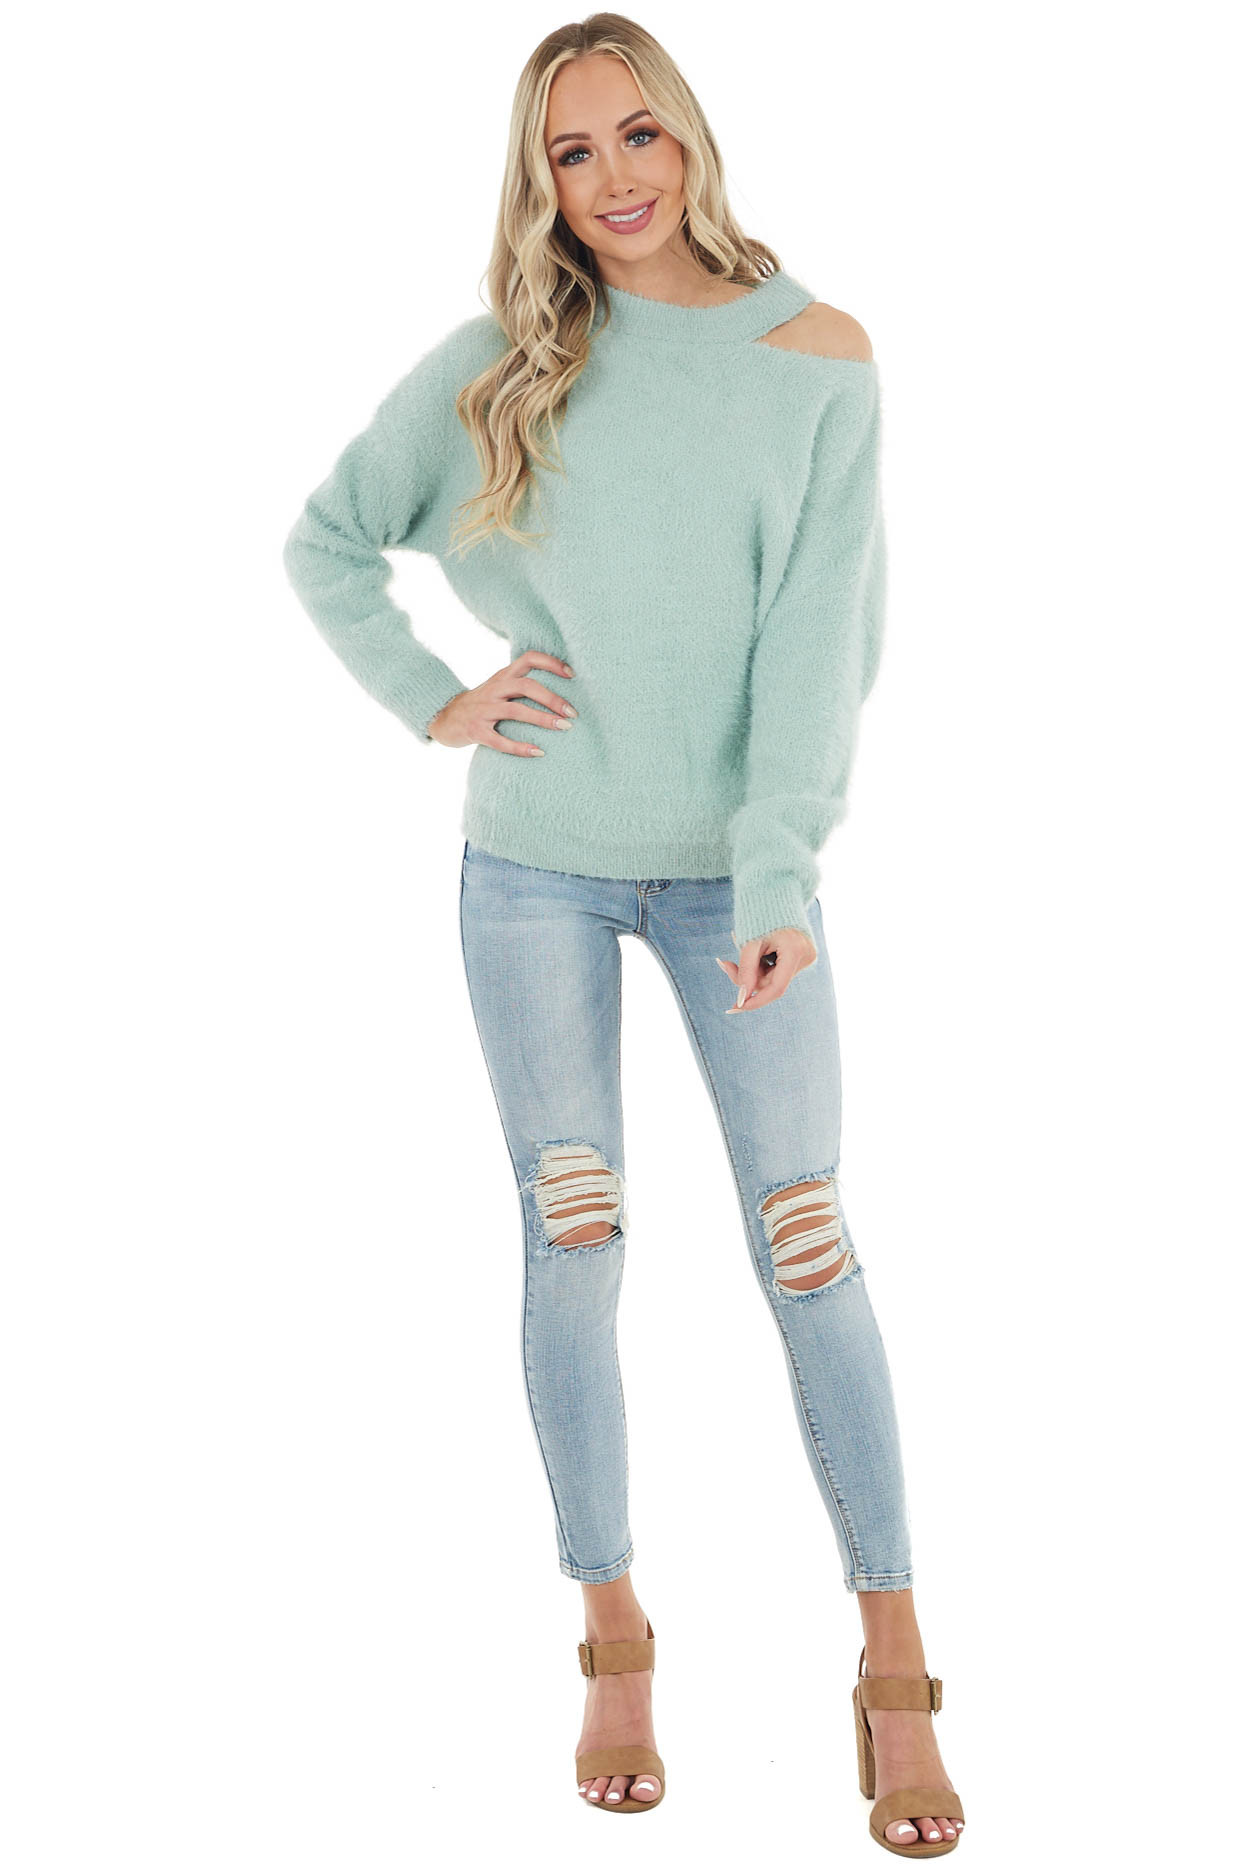 Mint Soft Fuzzy Knit Sweater with Cutout Detail